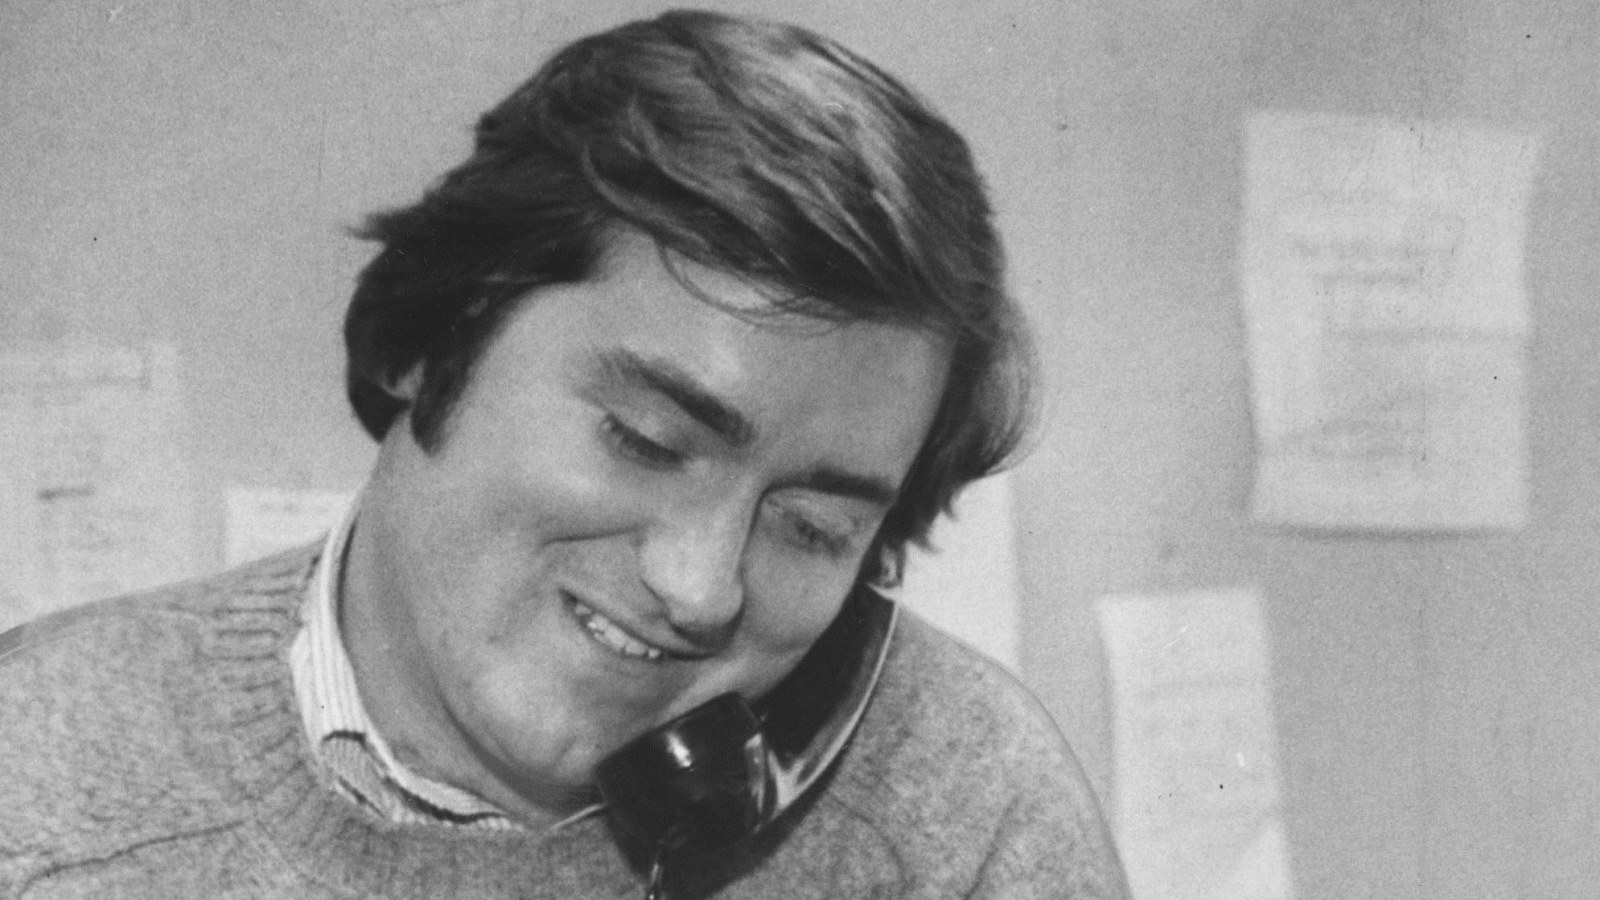 Tim Russert pictured here in 1979, 5 years after the 10-cent beer night in Cleveland. (Buffalo News file photo)